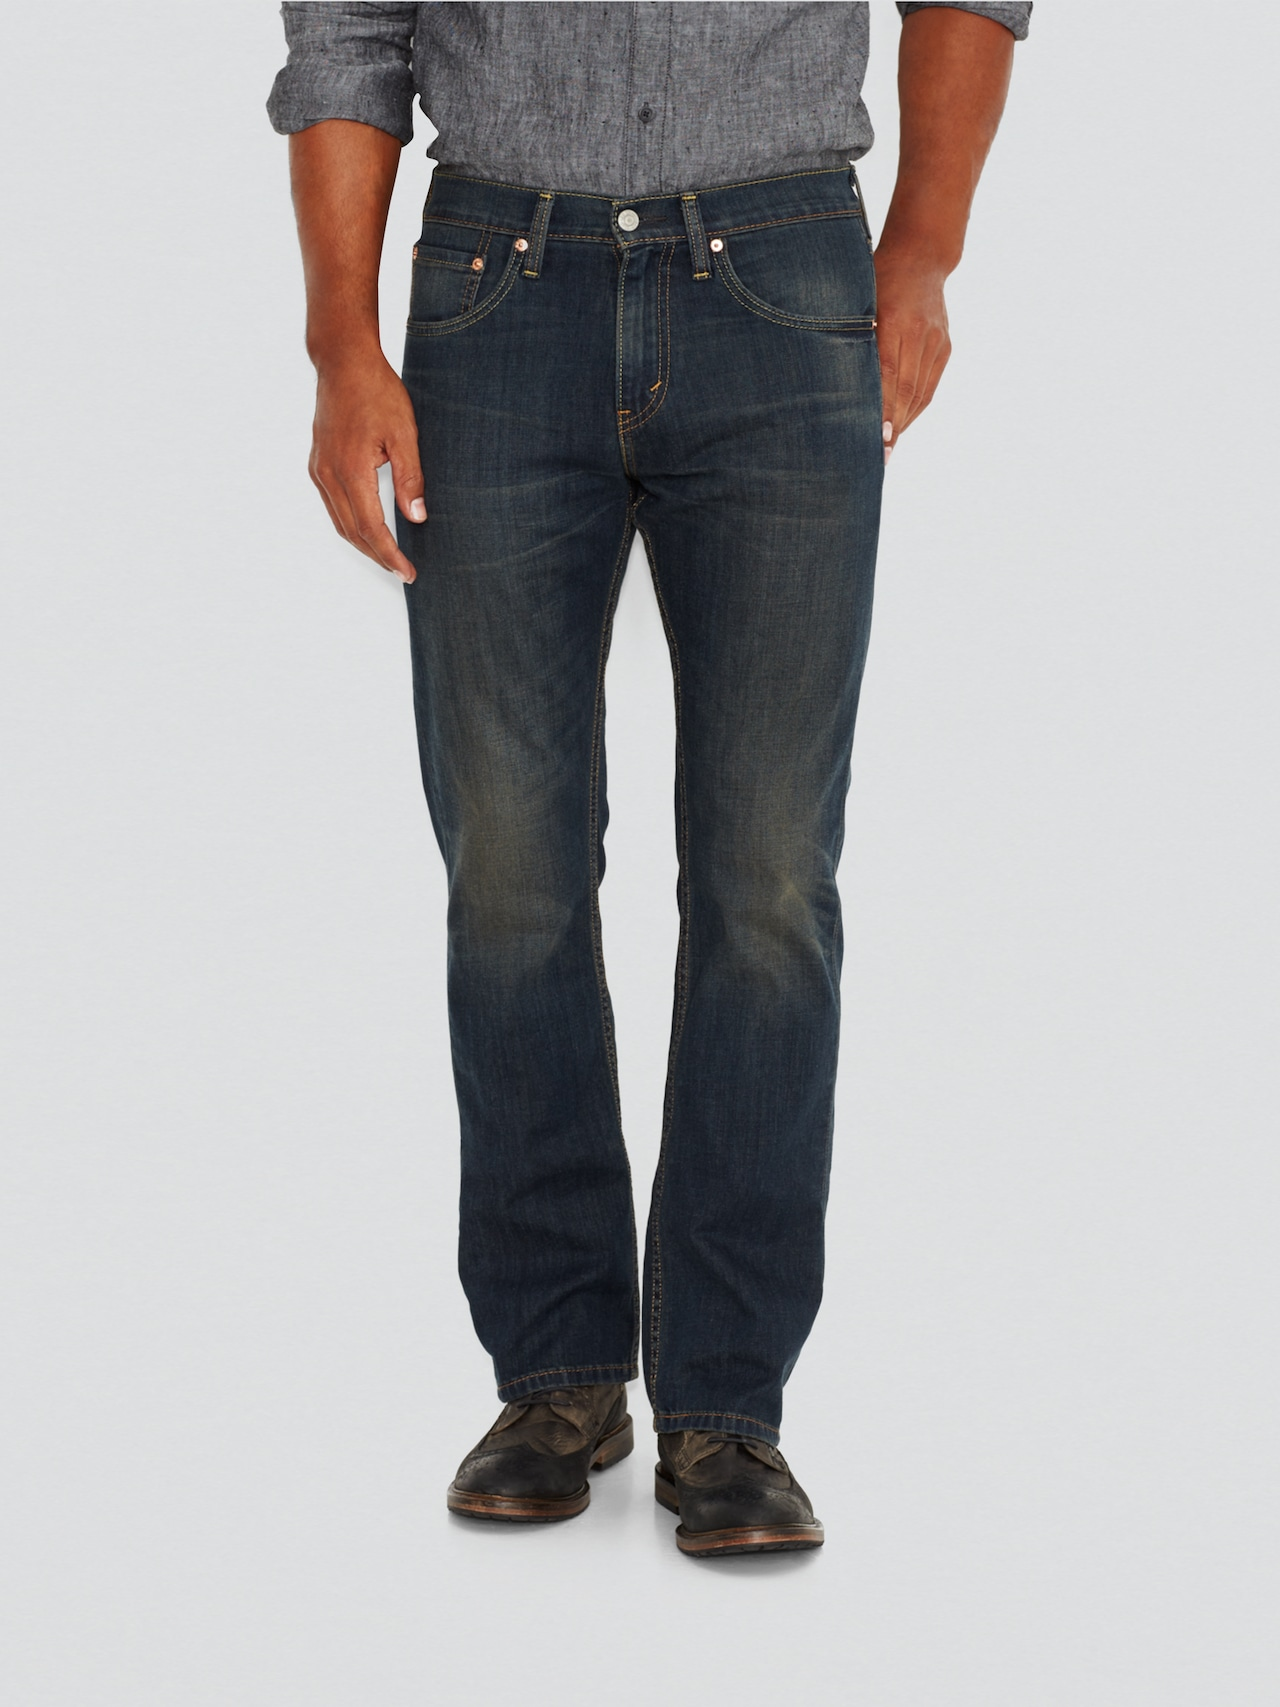 8d37e54b75 Levis 527 Bootcut In Covered Up - Just Jeans Online